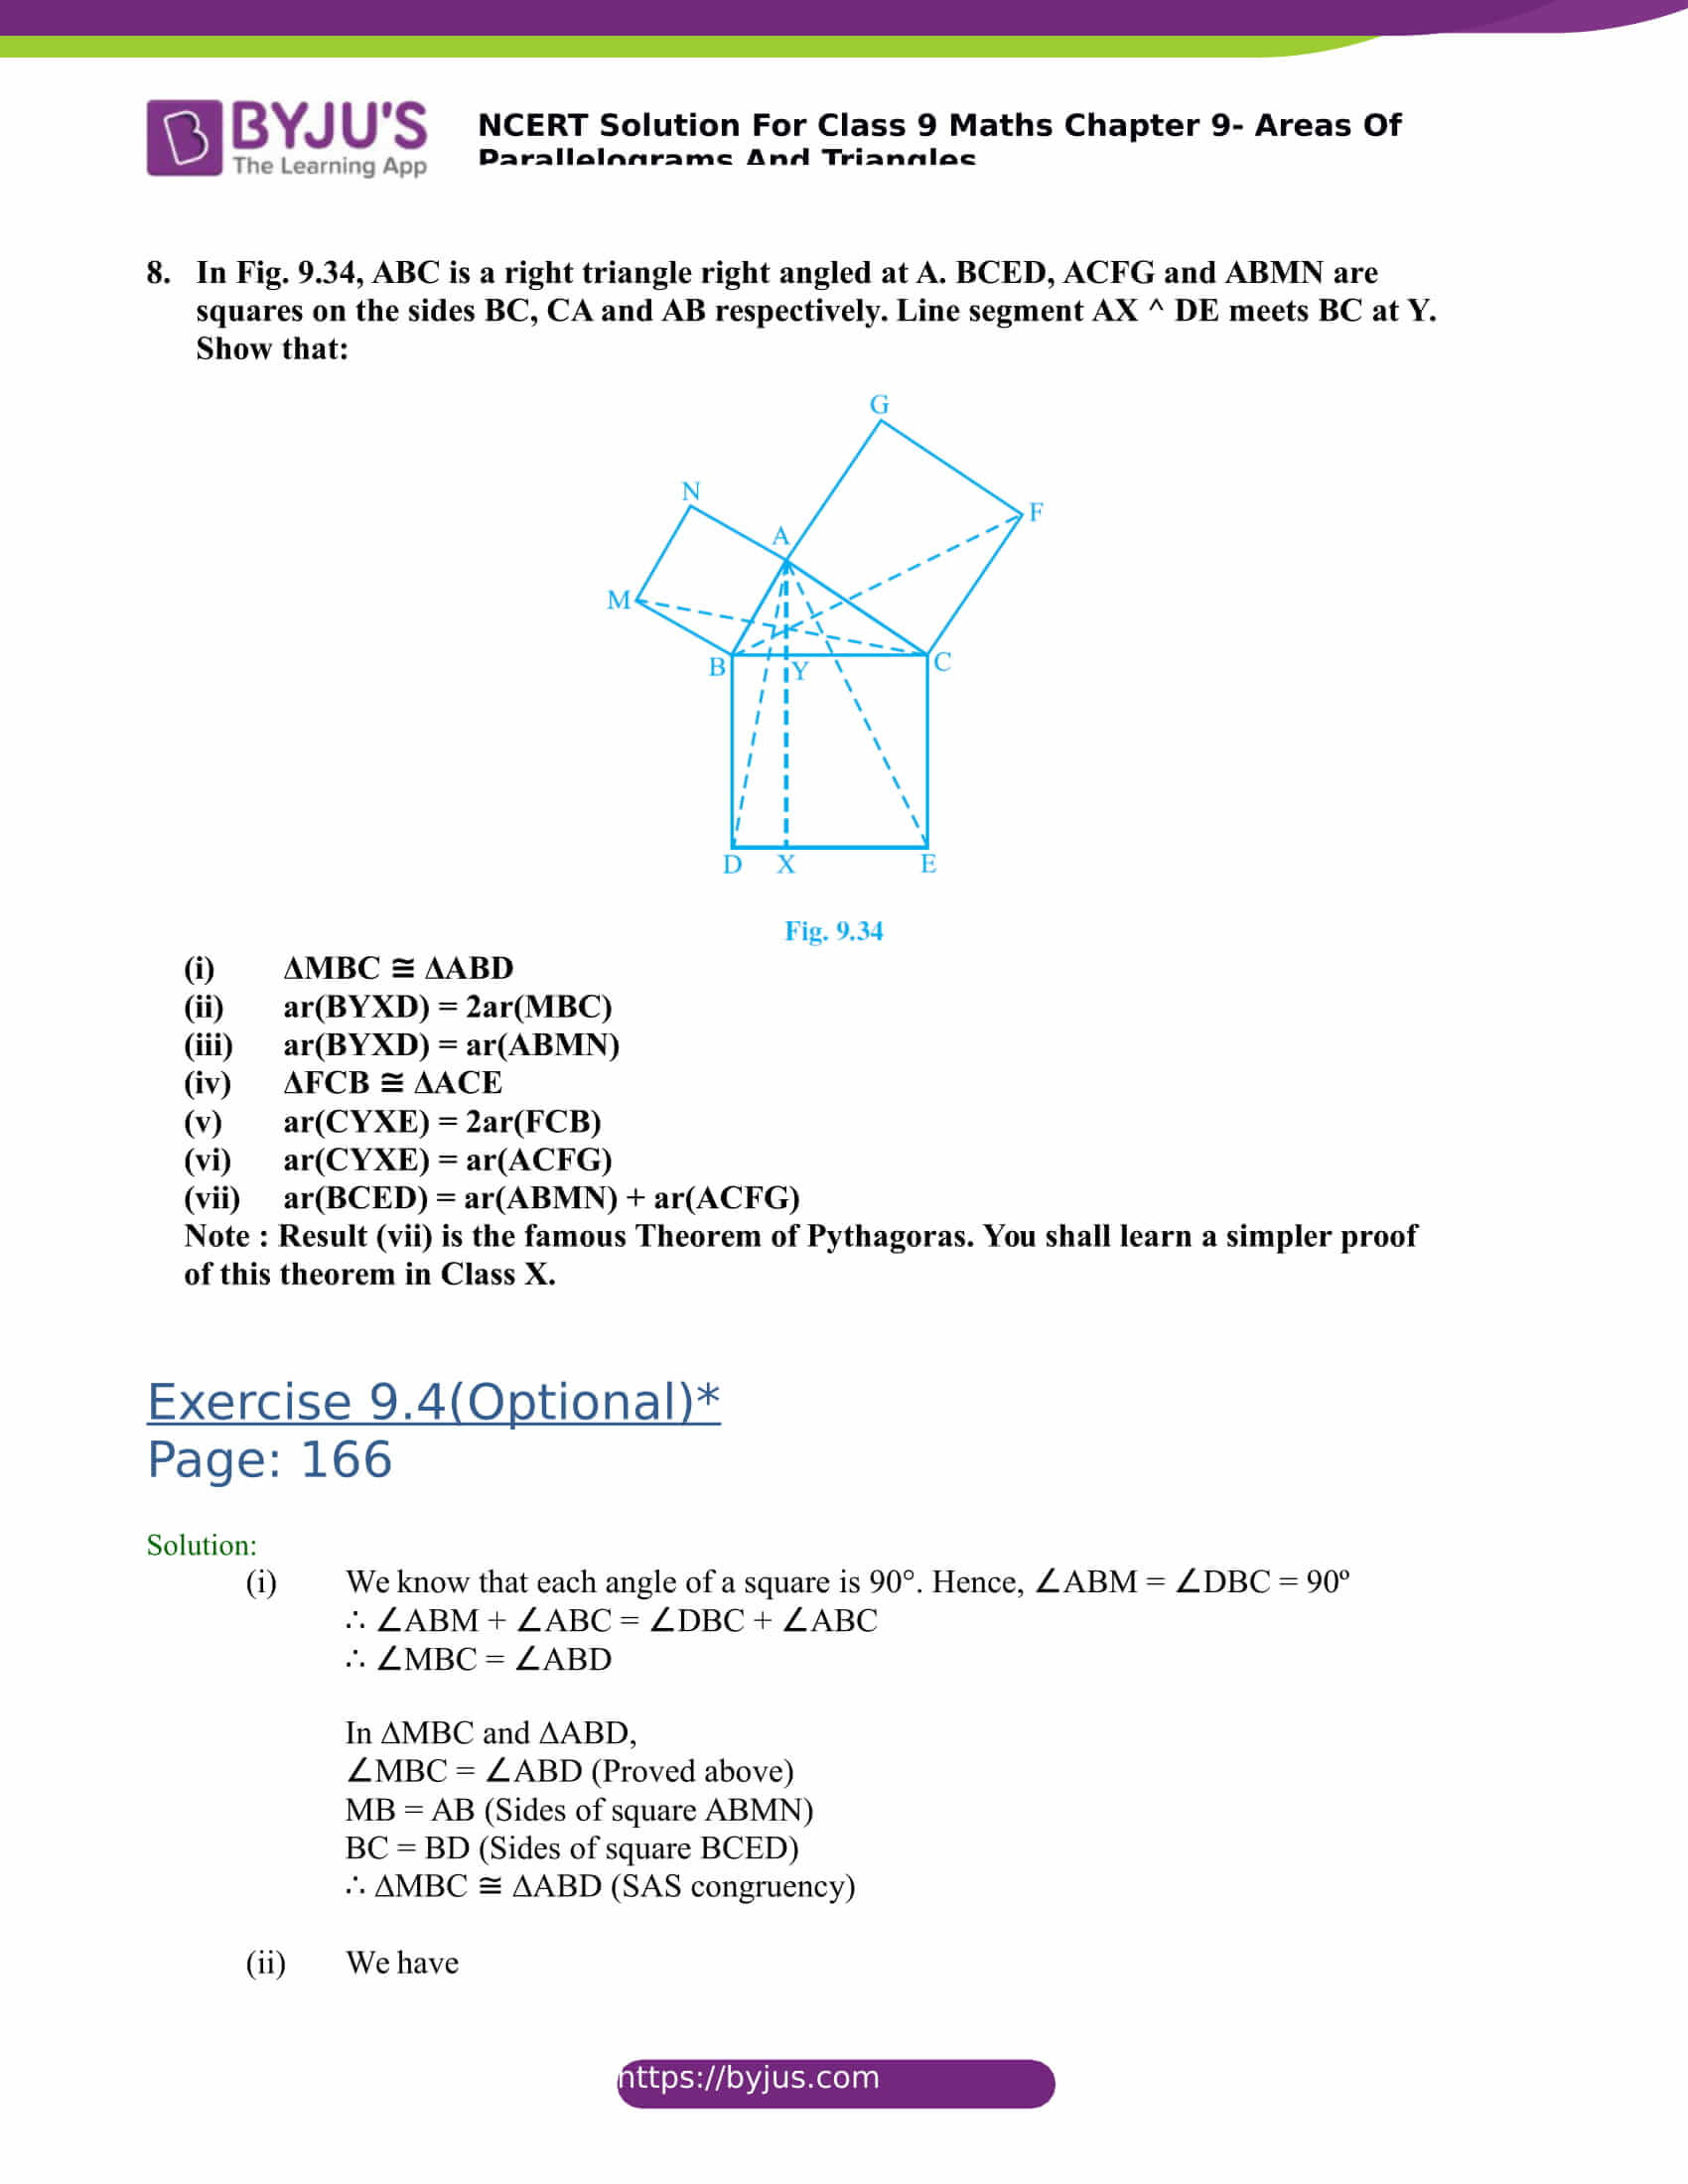 NCERT Solutions for class 9 Maths Chapter 9 Areas of parallelograms and triangles Part 30